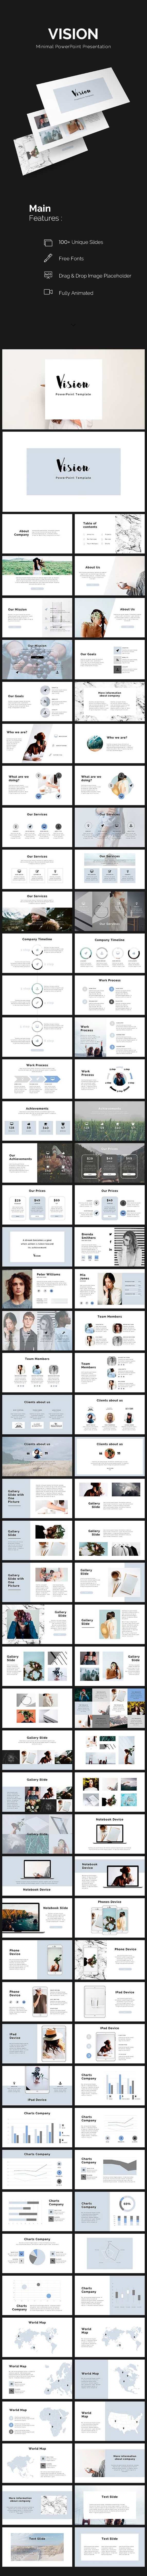 379 best minimal powerpoint template images on pinterest vision minimal powerpoint template toneelgroepblik Image collections